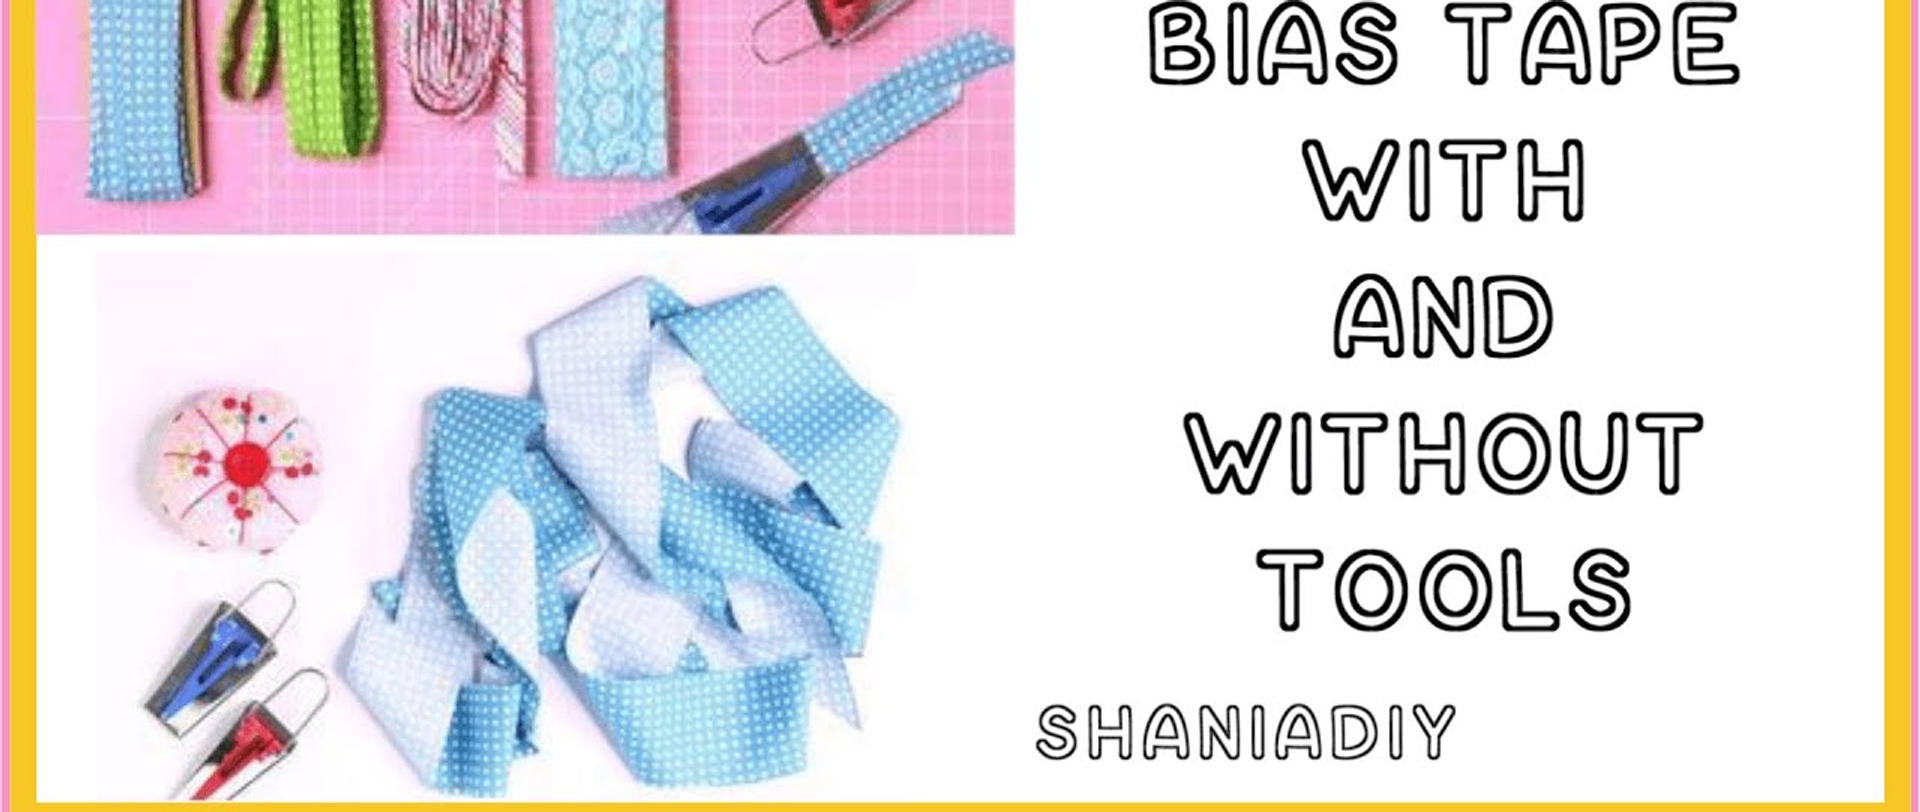 Click to learn how to make bias tape by hand and also with a bias tape maker kit.